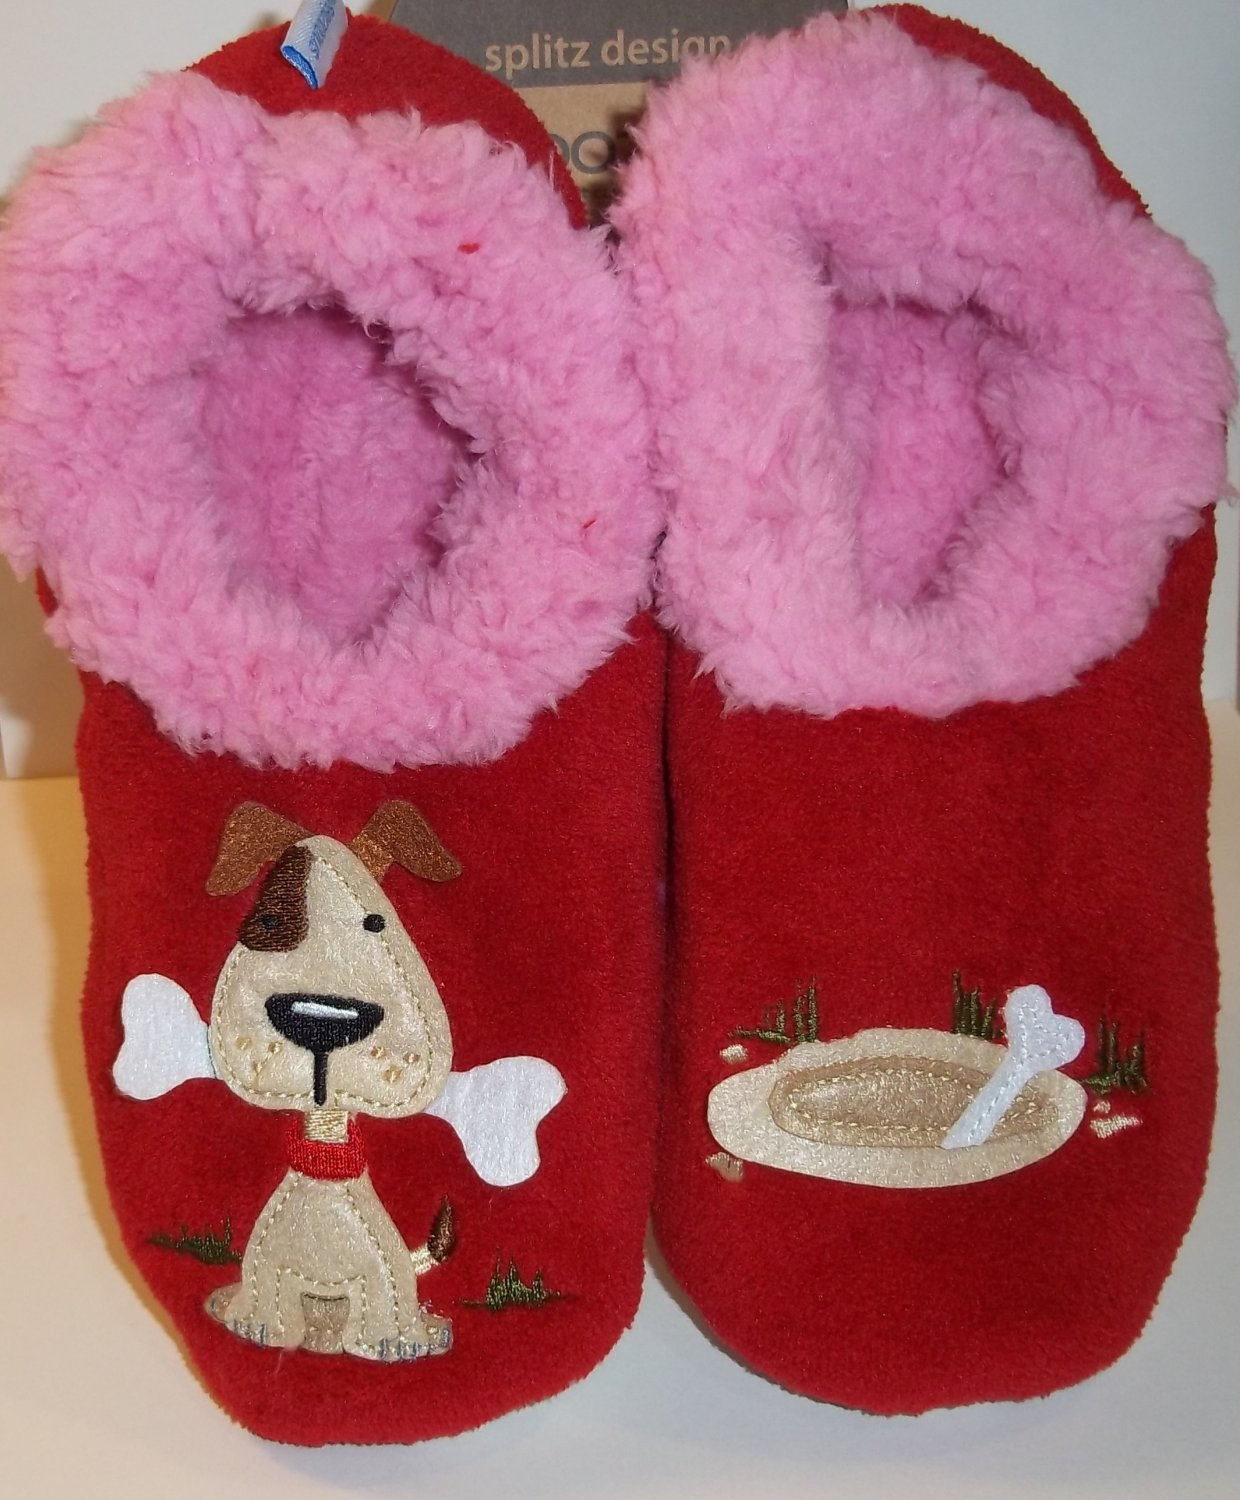 Snoozies Splitz Design Red Pink Puppy Dog Bone Animal Slippers Womens Size L 9-10